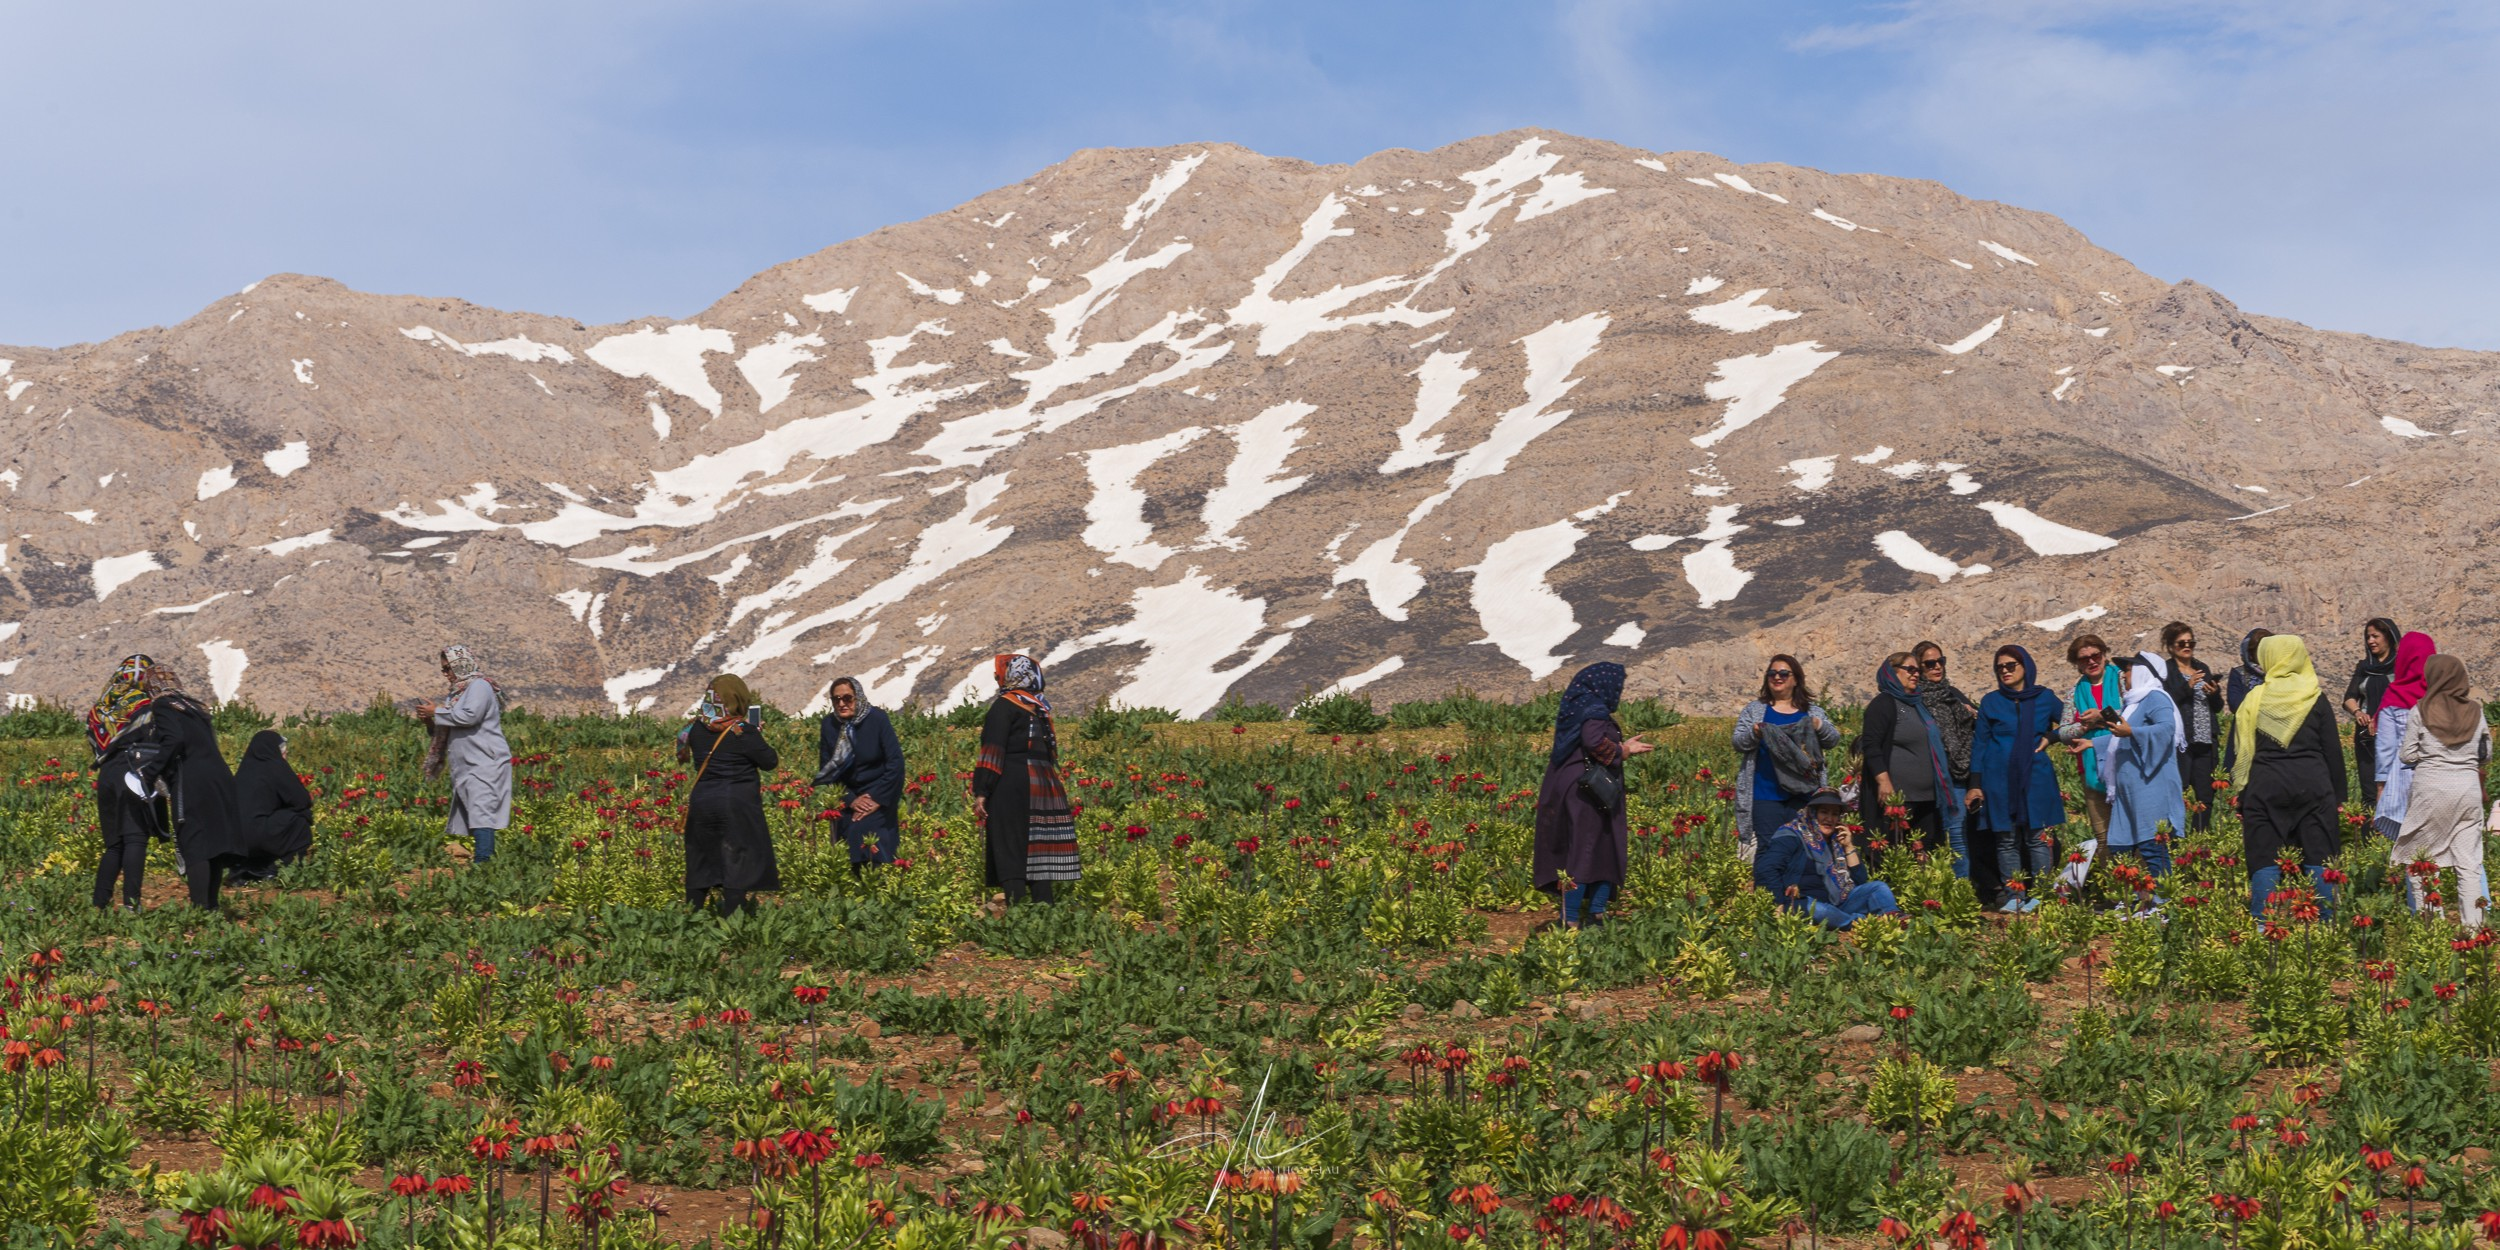 A group of Iranian women visiting the Crown Imperial colony in the Zagros Mountains range.